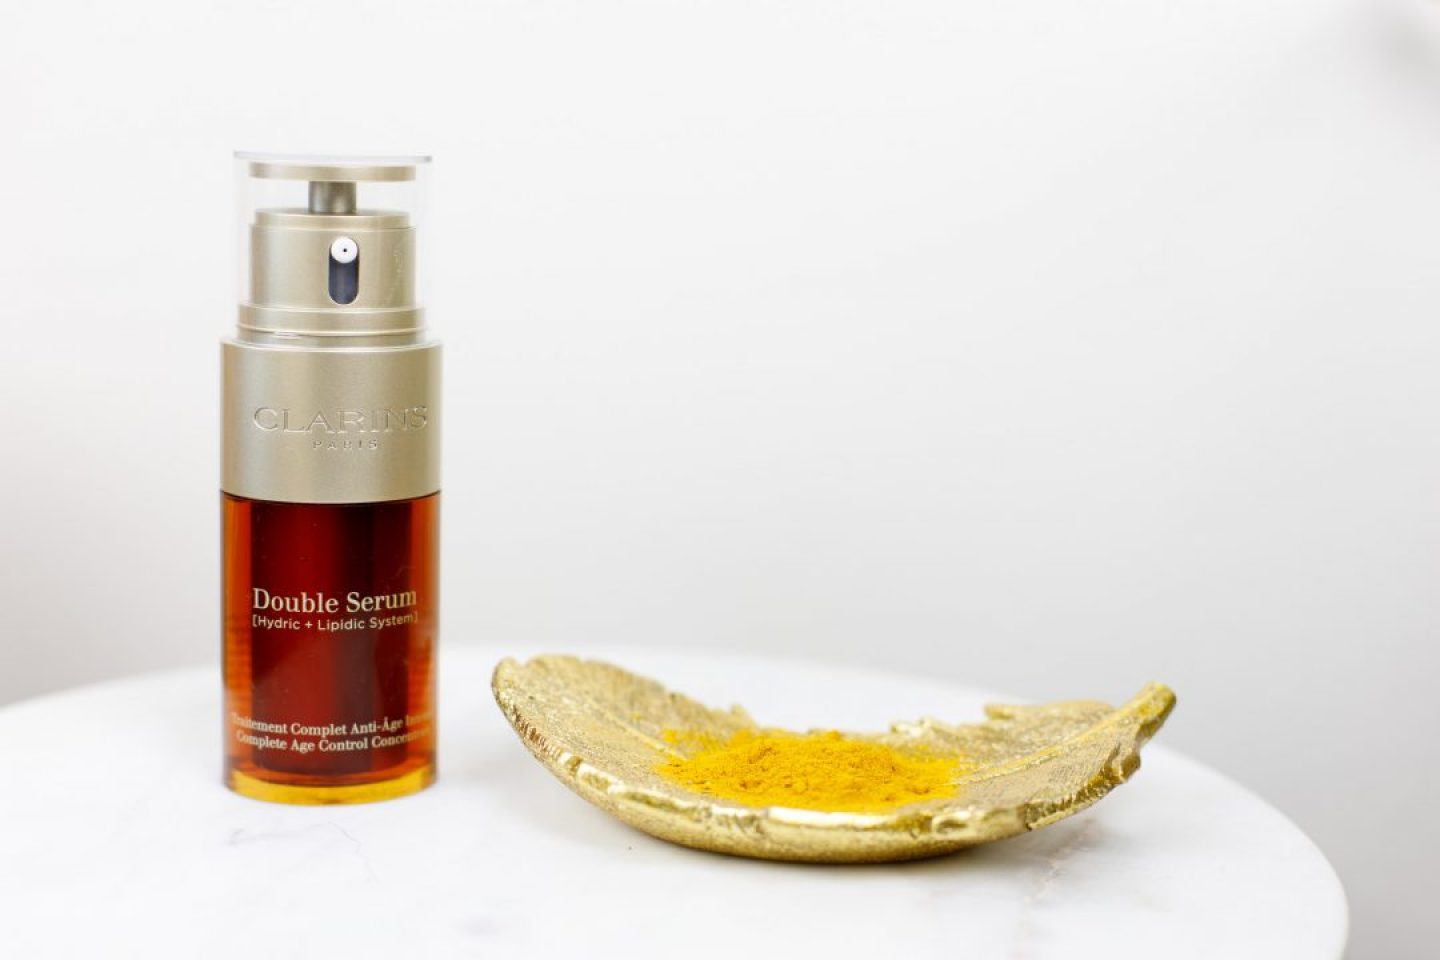 My Latest Skincare Find: Clarins Double Serum